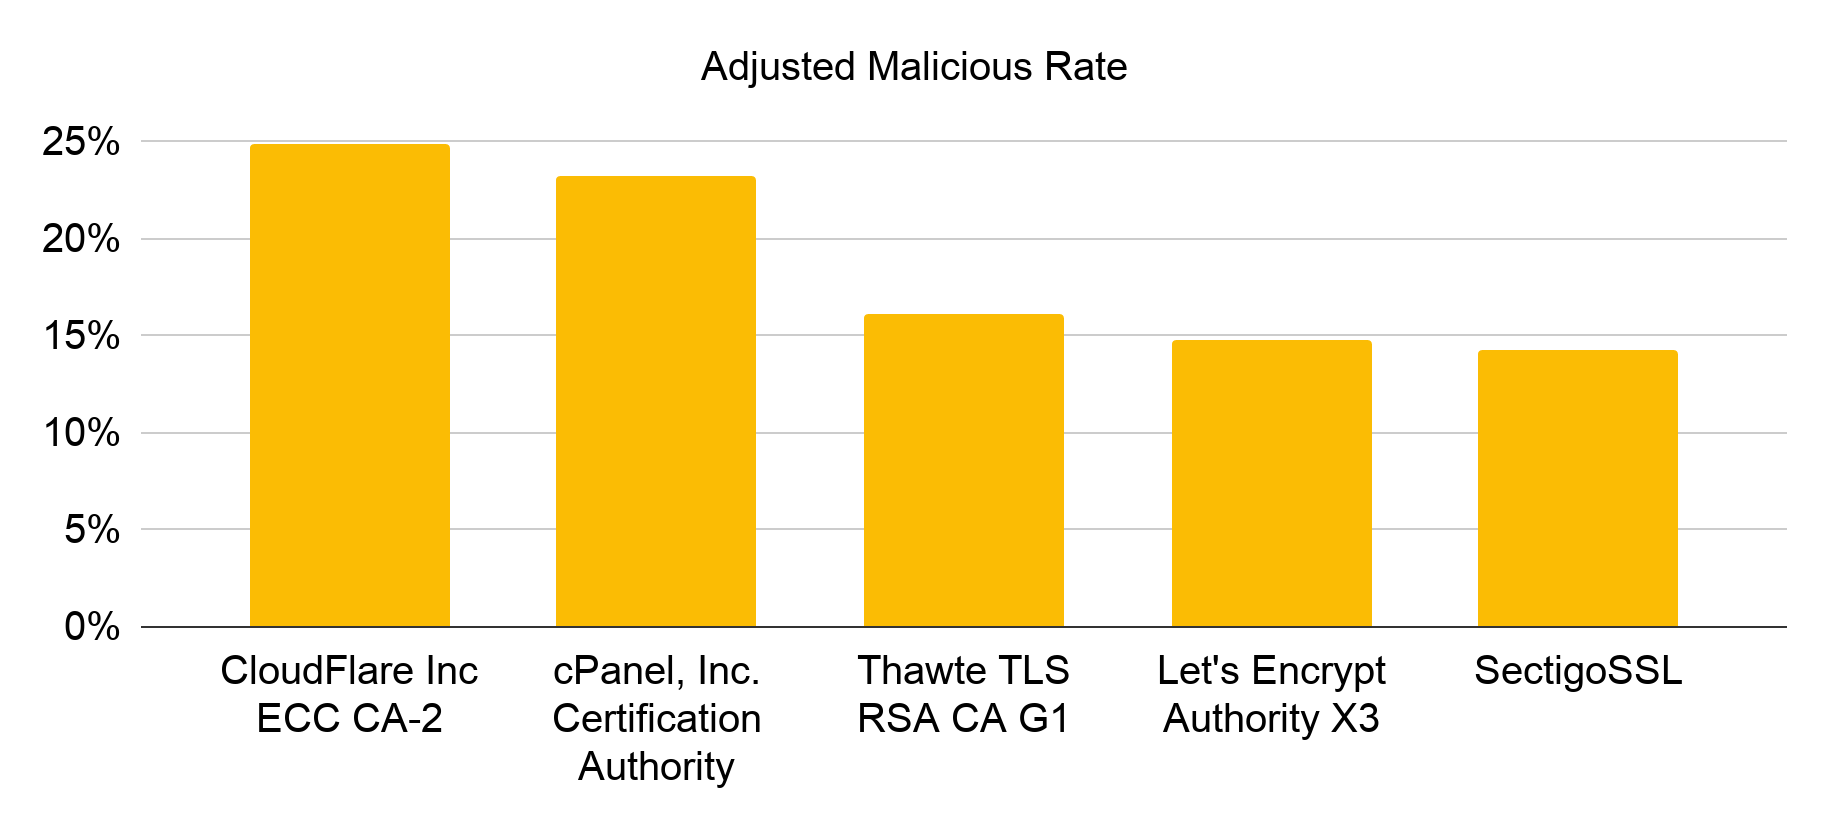 Ranked by adjusted malicious rate, the top 5 certificate authorities most abused by cybersquatting in December 2019 are CloudFlare Inc ECC CA-2, cPanel, Inc. Certification Authority, Thawte TLS RSA CA G1, Let's Encrypt Authority X3 and SectigoSSL